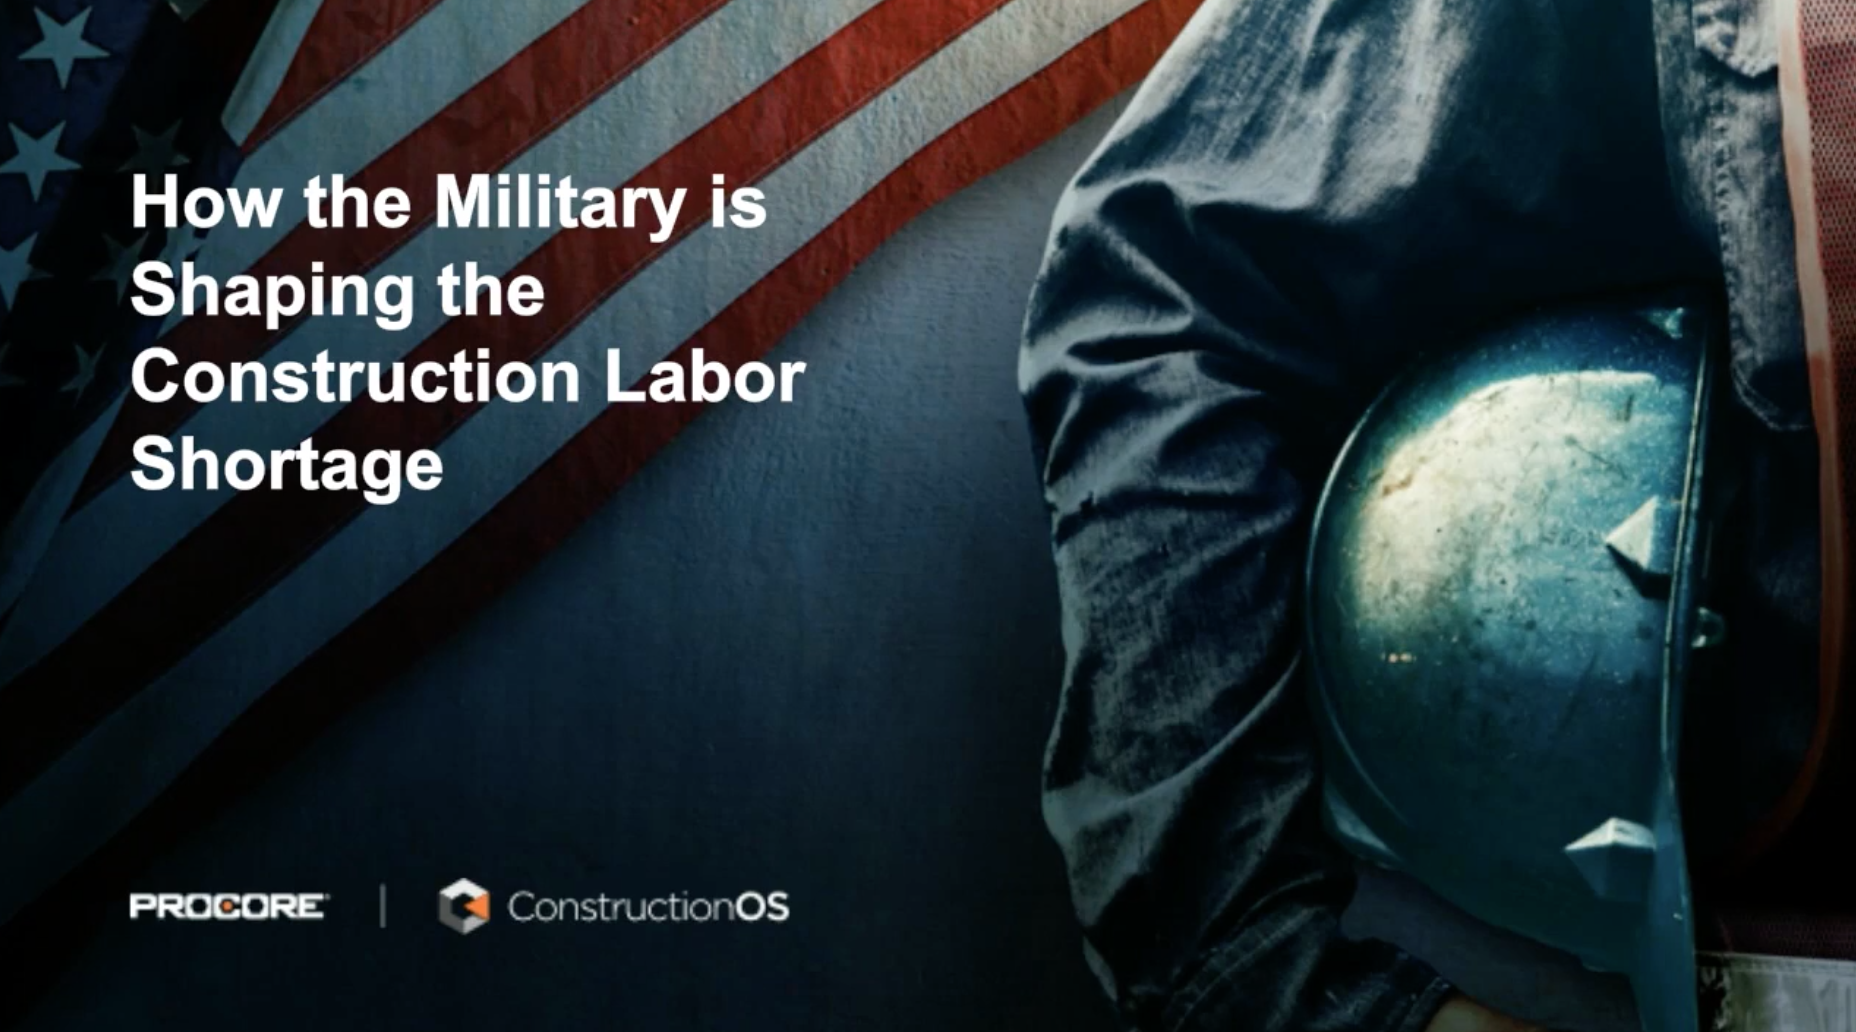 How the Military is Shaping the Construction Labor Shortage